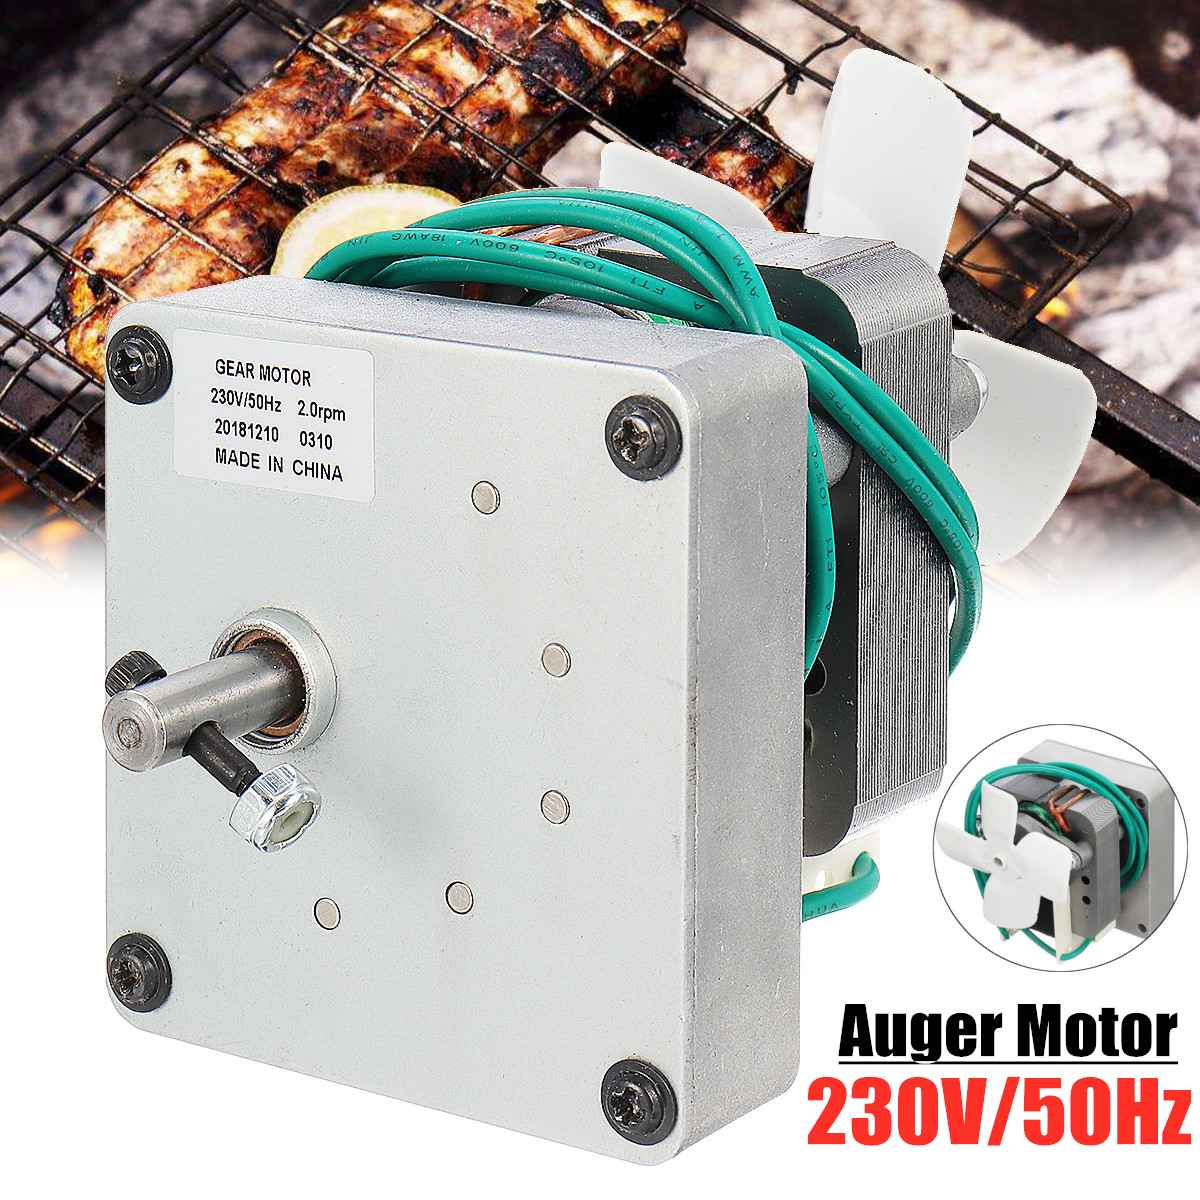 120v 60Hz Replacement Auger Motor For Pit Boss Electric Wood Pellet Smoker  US